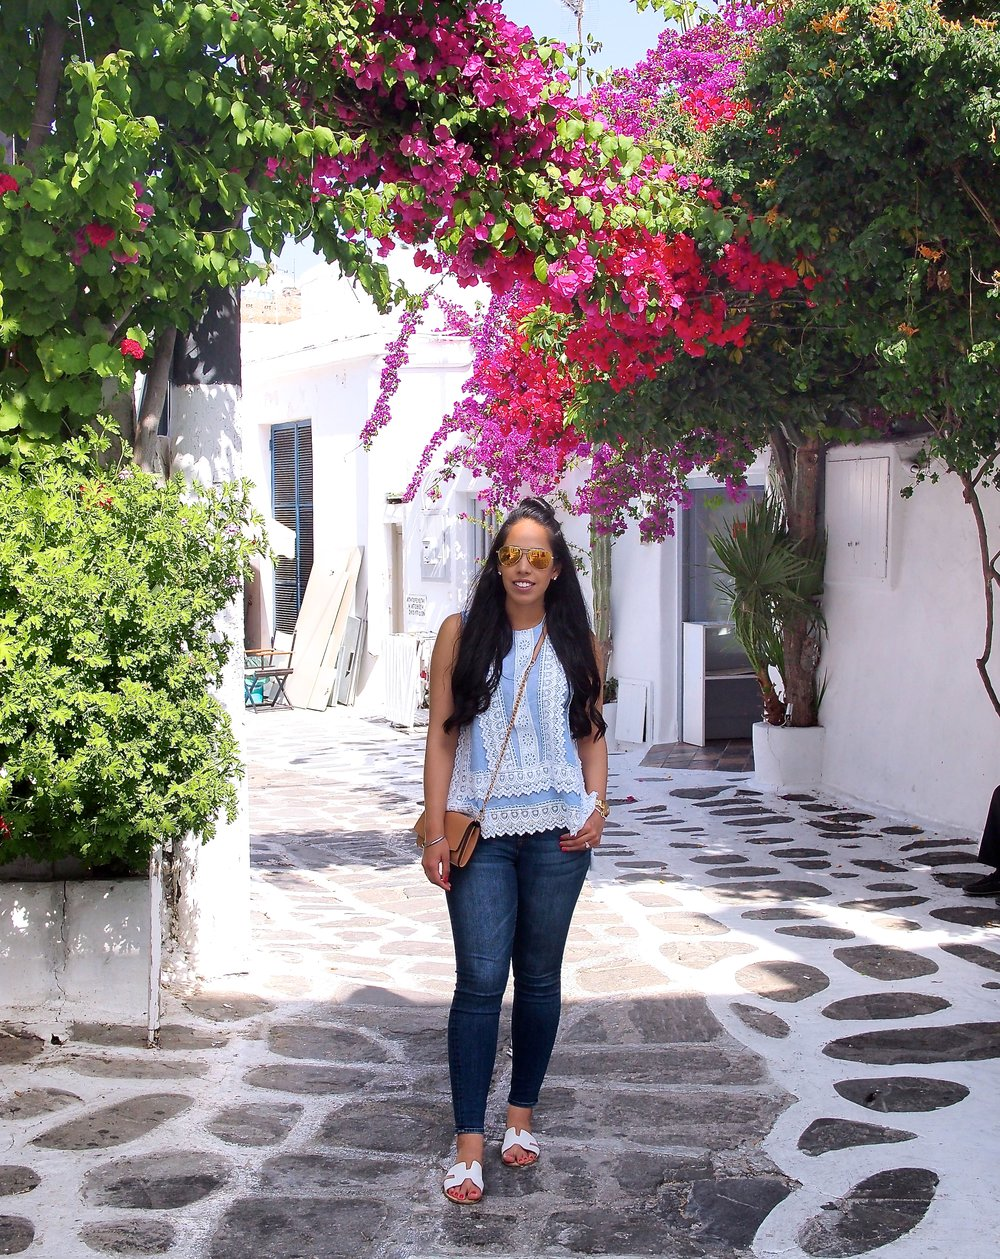 mykonos-town-travel-guide.JPG